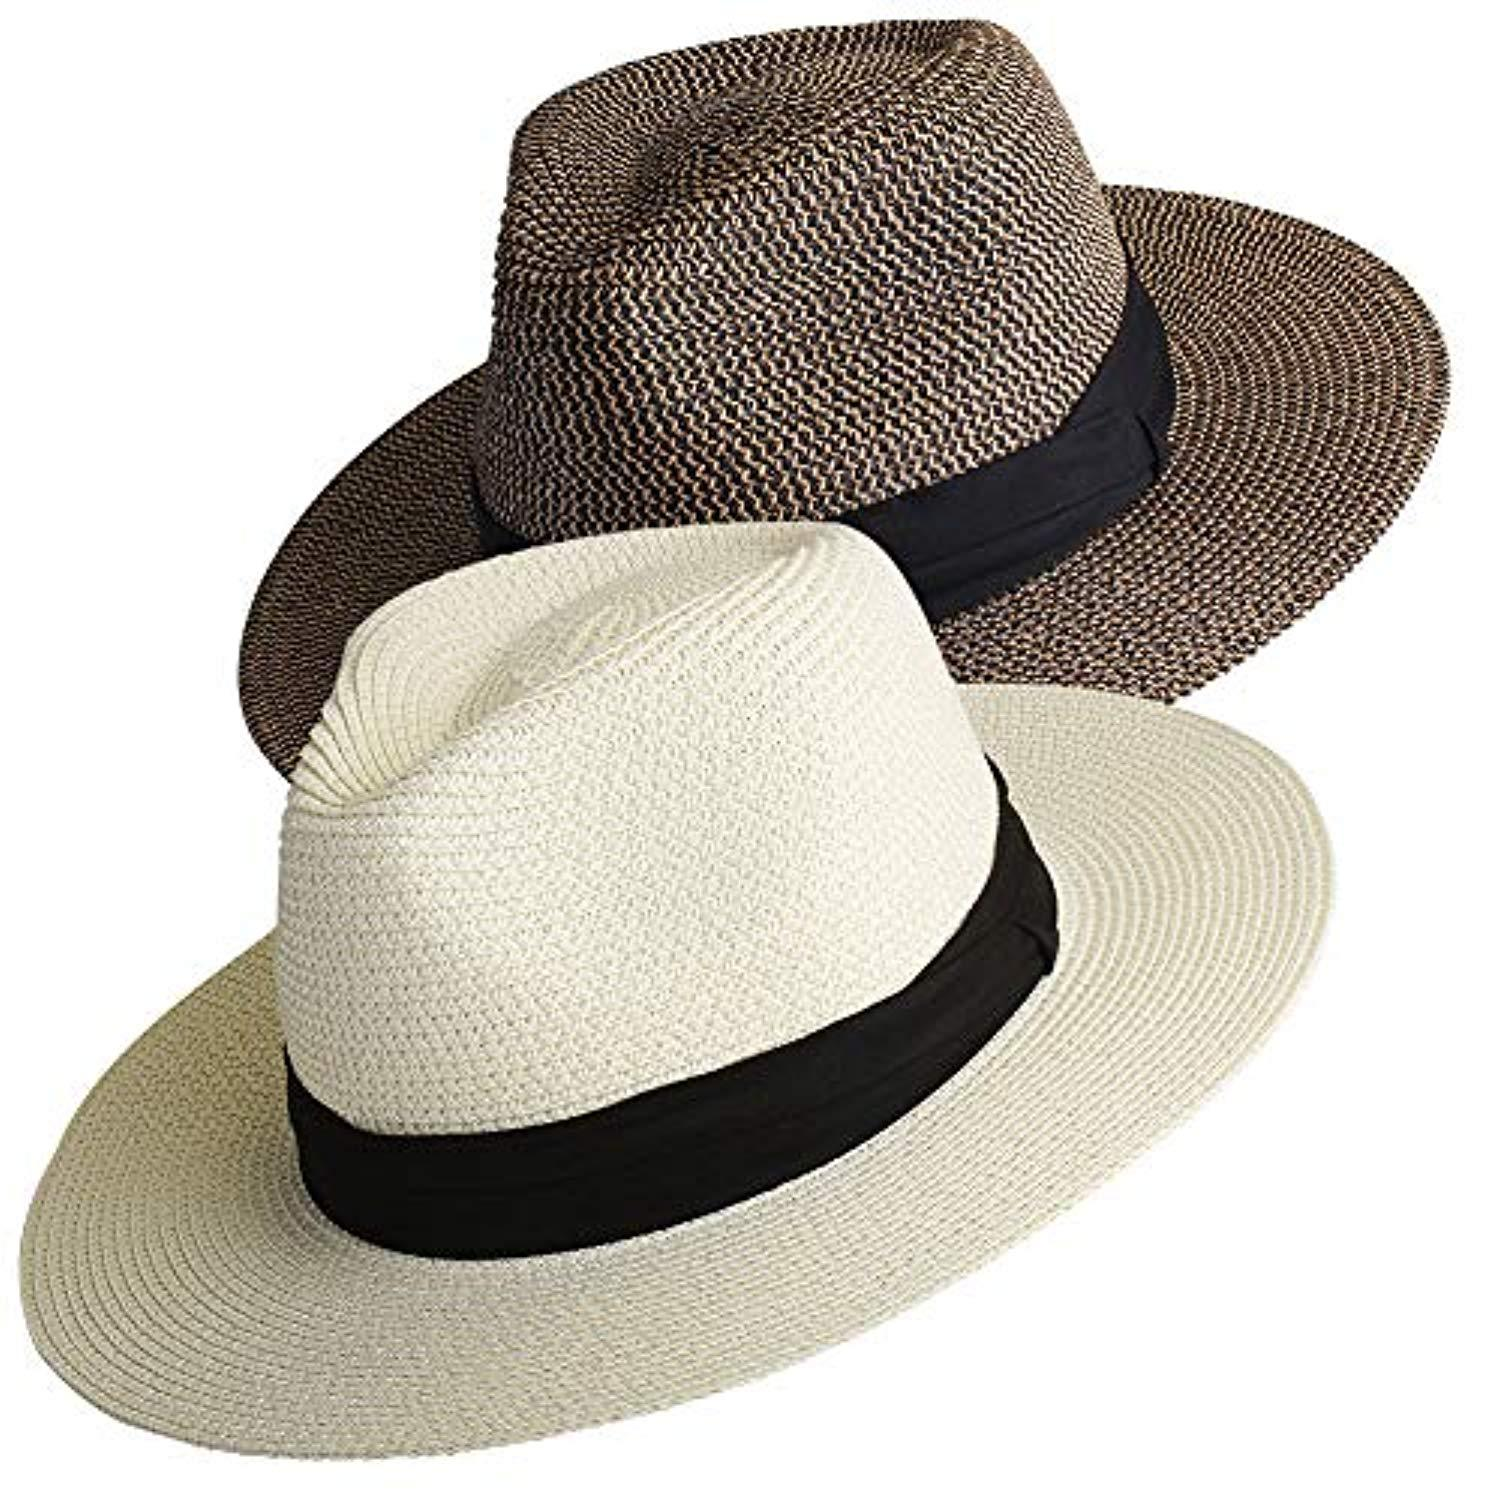 18a67acff Womens Wide Brim Straw Panama Hat Fedora Summer Beach Sun Hat UPF50